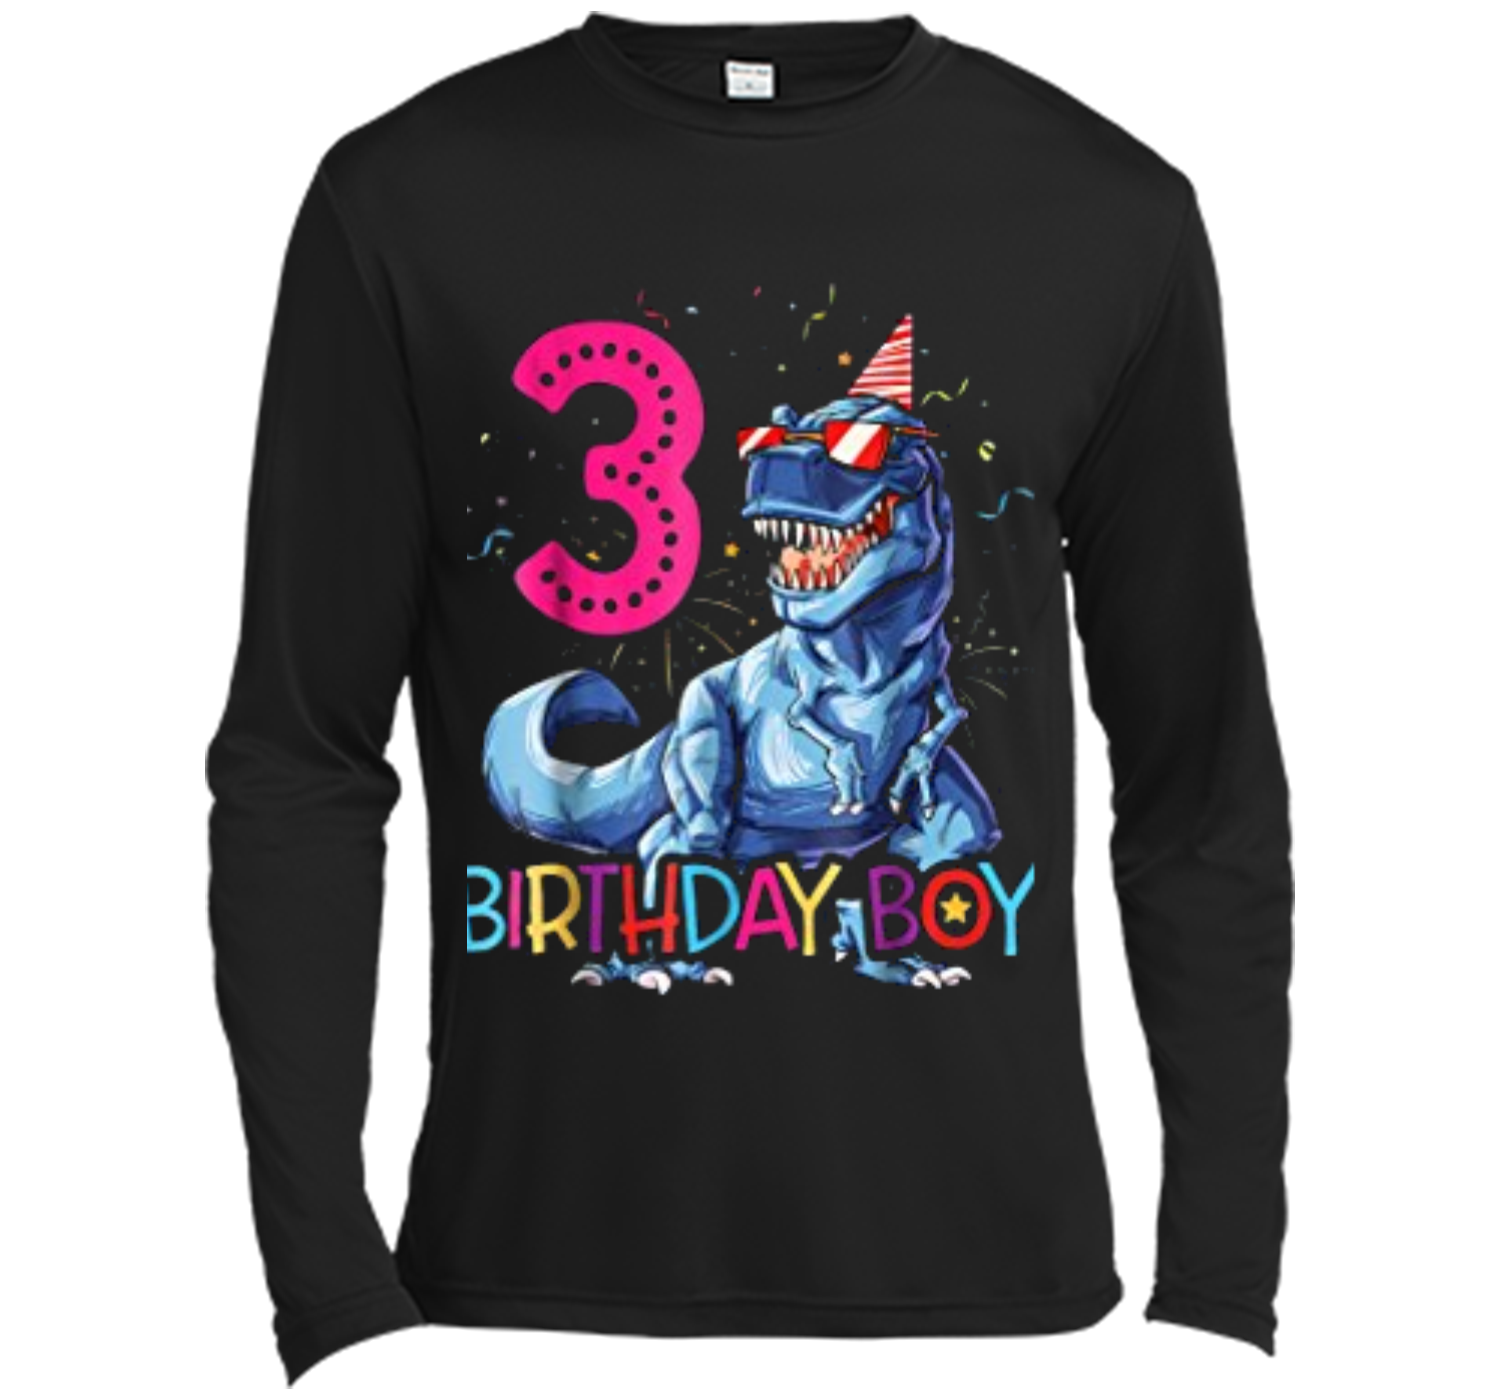 Dinosaur T Rex 3 Year Old Kids 3rd Birthday Long Sleeve Moisture Absorbing Shirt